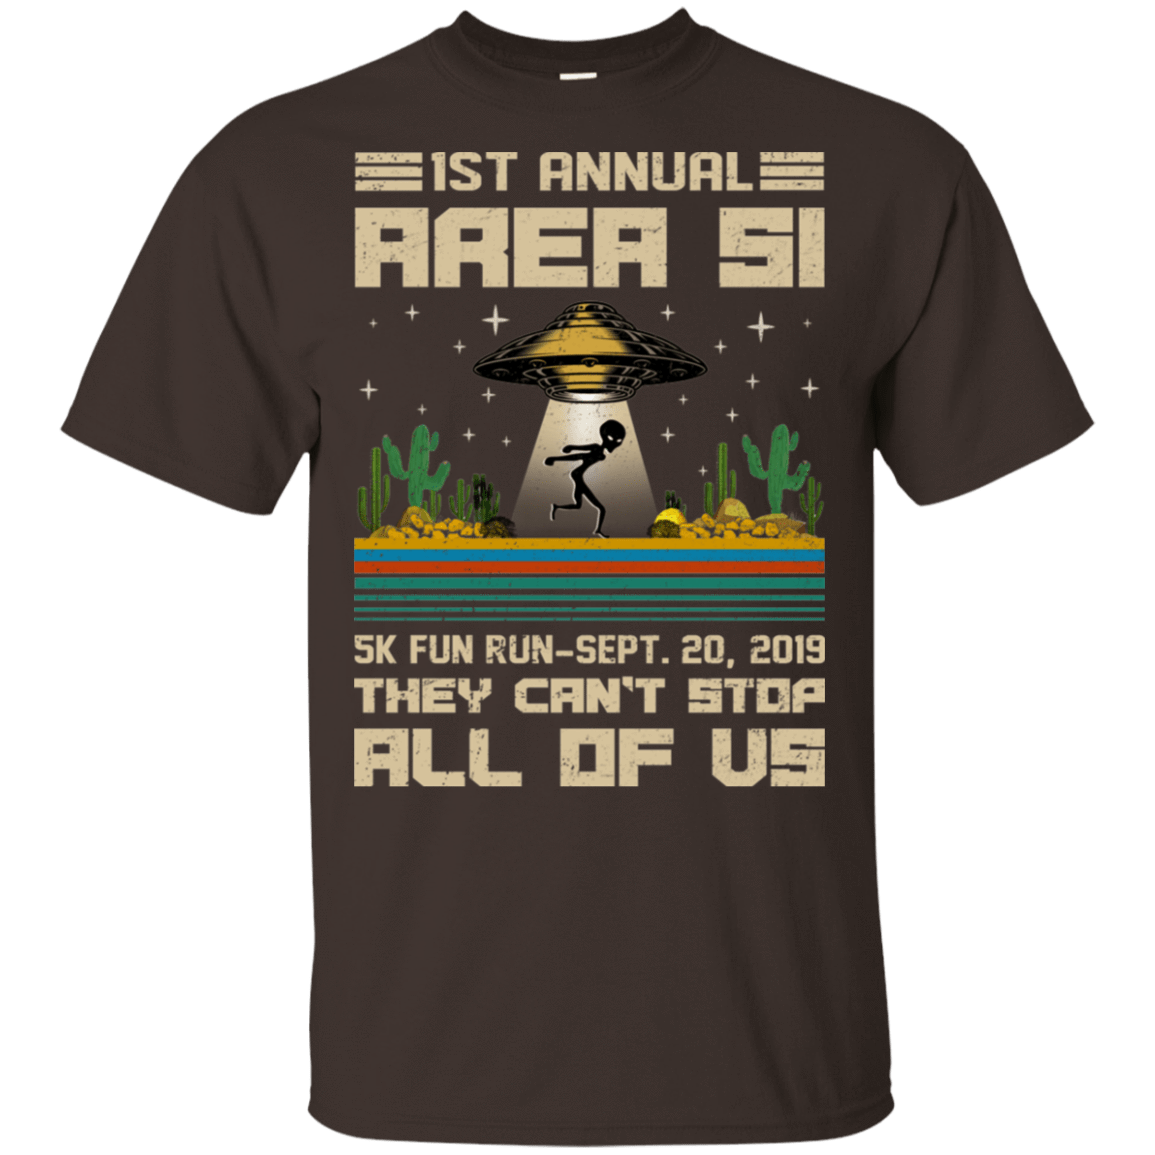 1ST Annual Area Si 5K Fun Run Sept 20 2019 T-Shirts, Hoodie, Tank 22-2283-78498843-12087 - Tee Ript